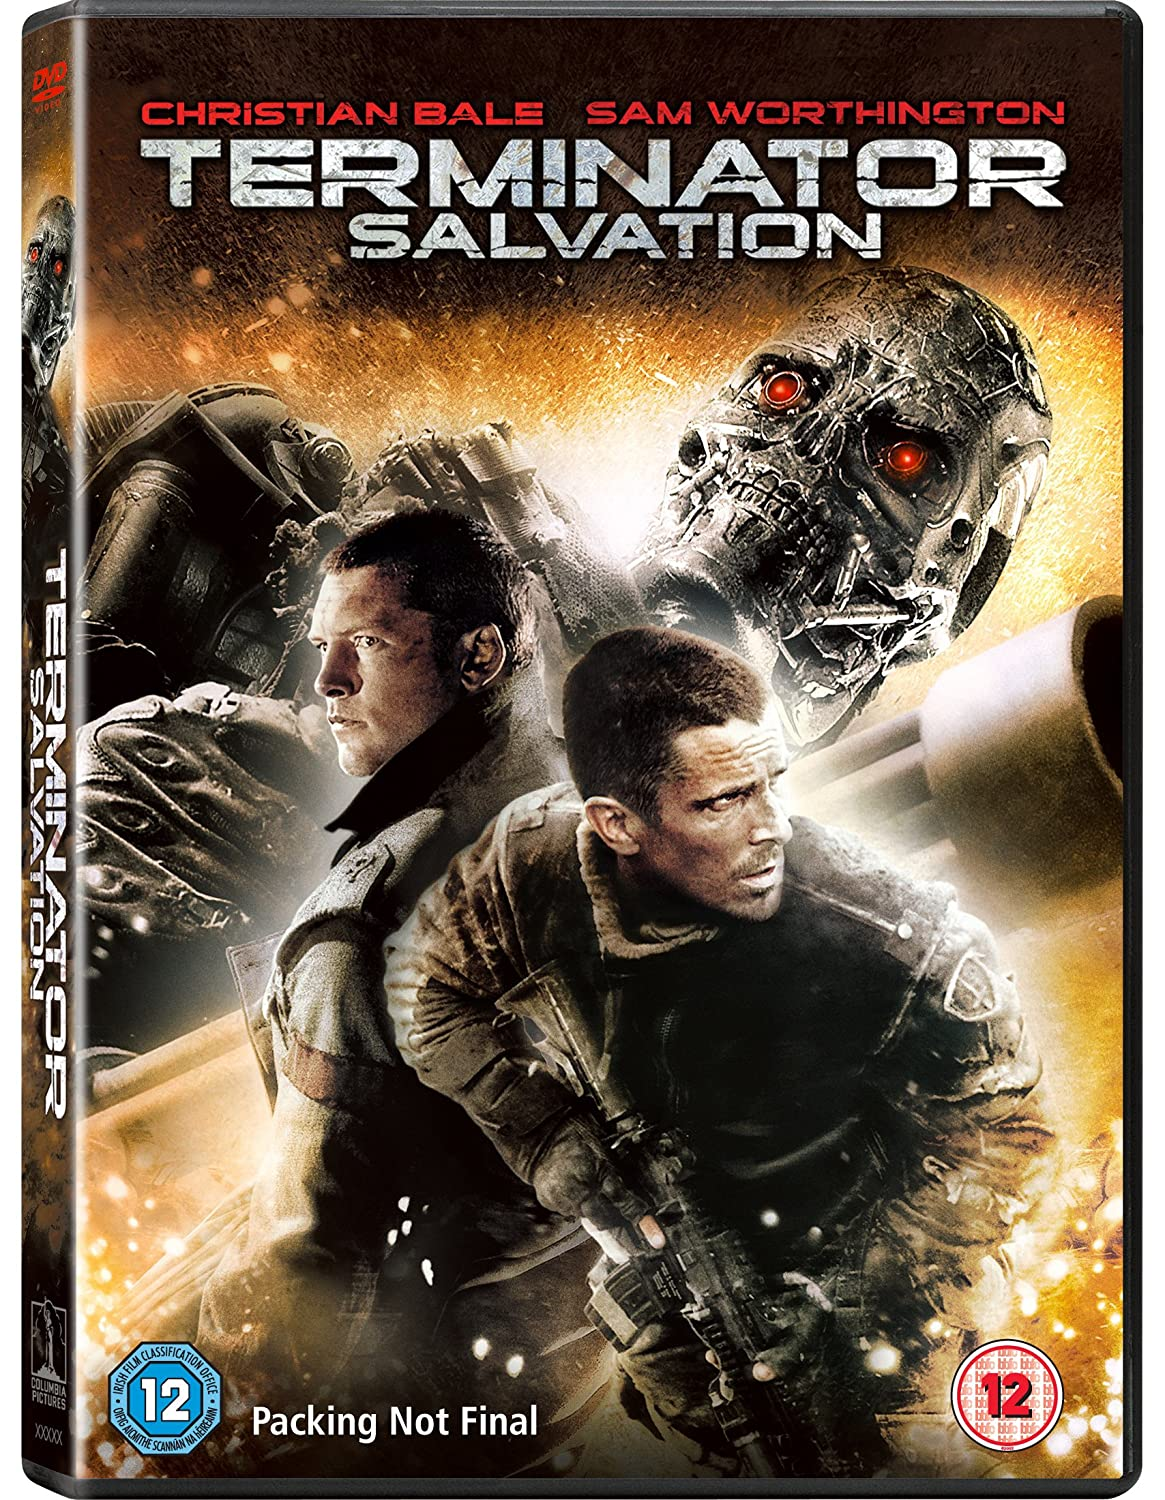 Terminator salvation dvd 2009 amazon christian bale sam terminator salvation dvd 2009 amazon christian bale sam worthington bryce dallas howard mcg dvd blu ray thecheapjerseys Image collections